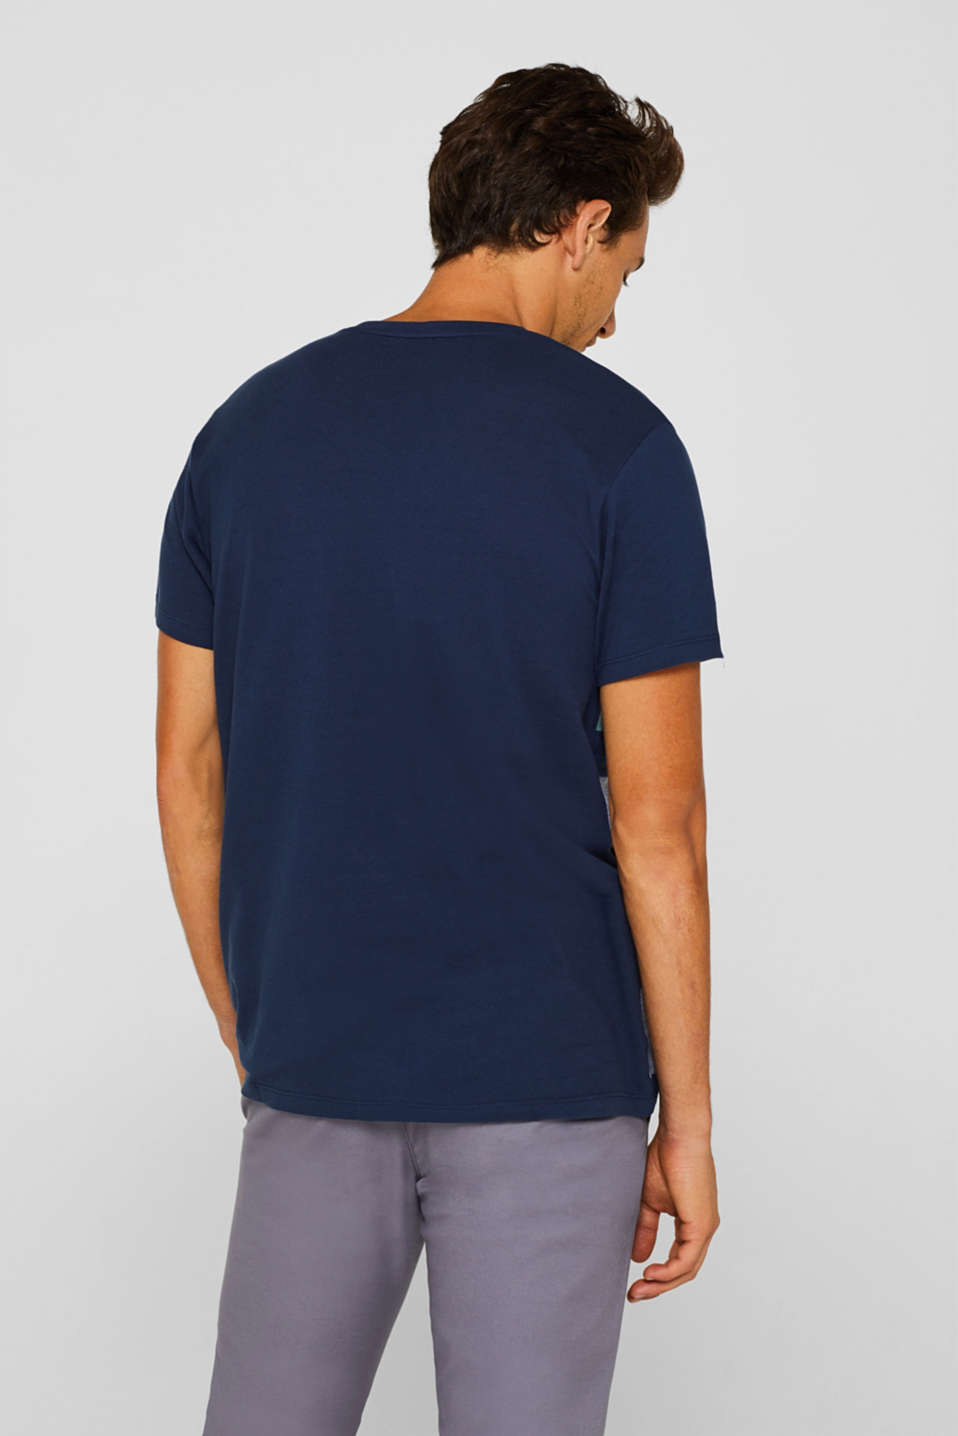 Piqué T-shirt in 100% cotton, NAVY, detail image number 3